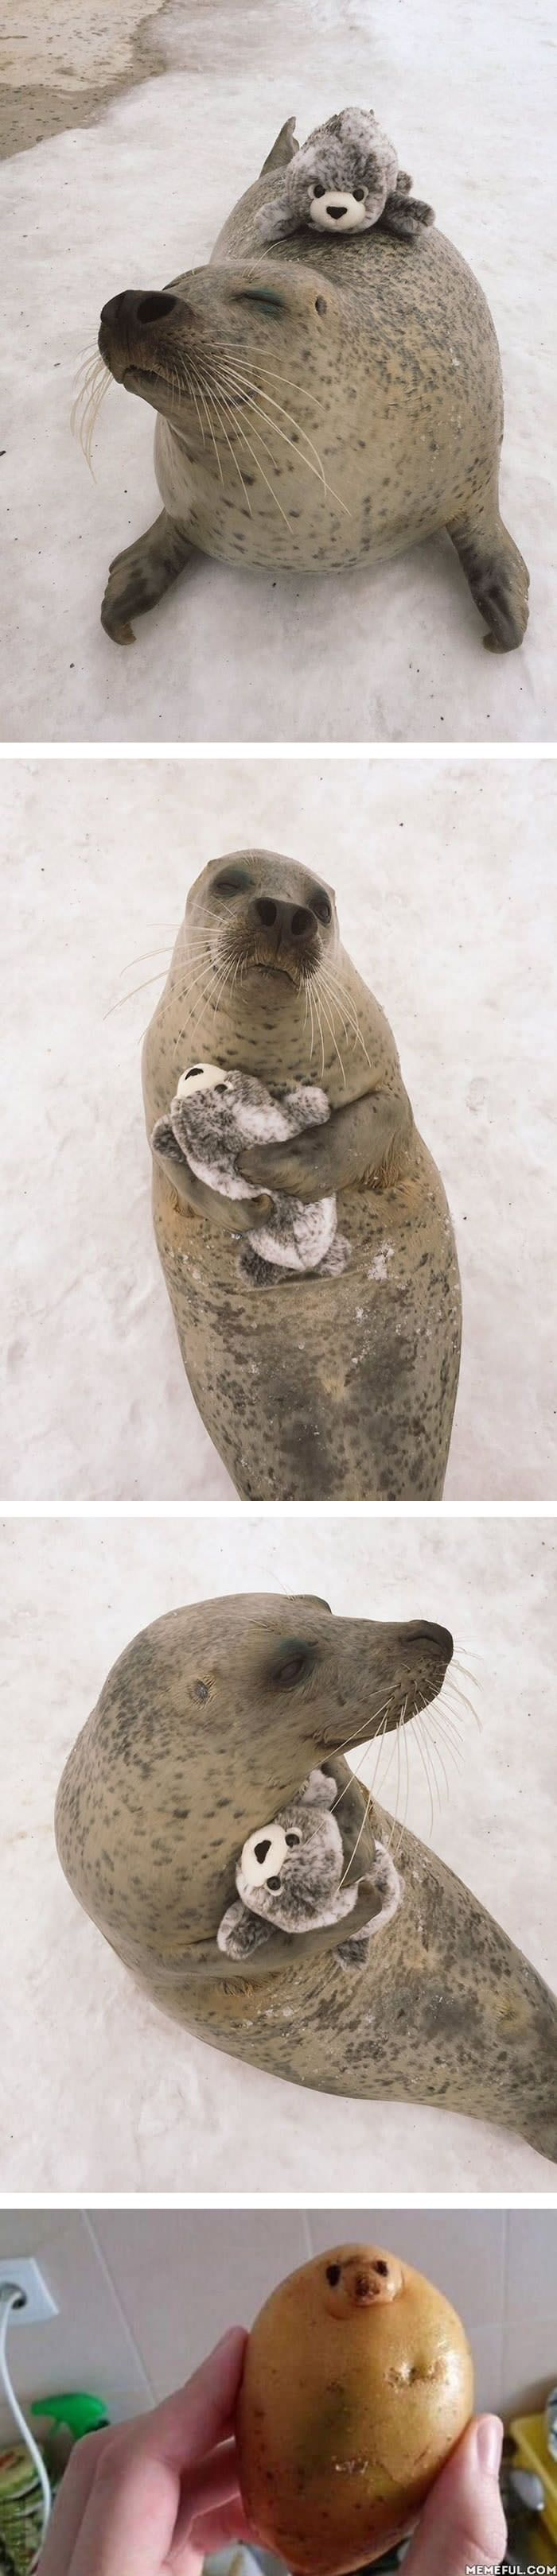 Seal spends his days cuddling a tiny toy version of himself